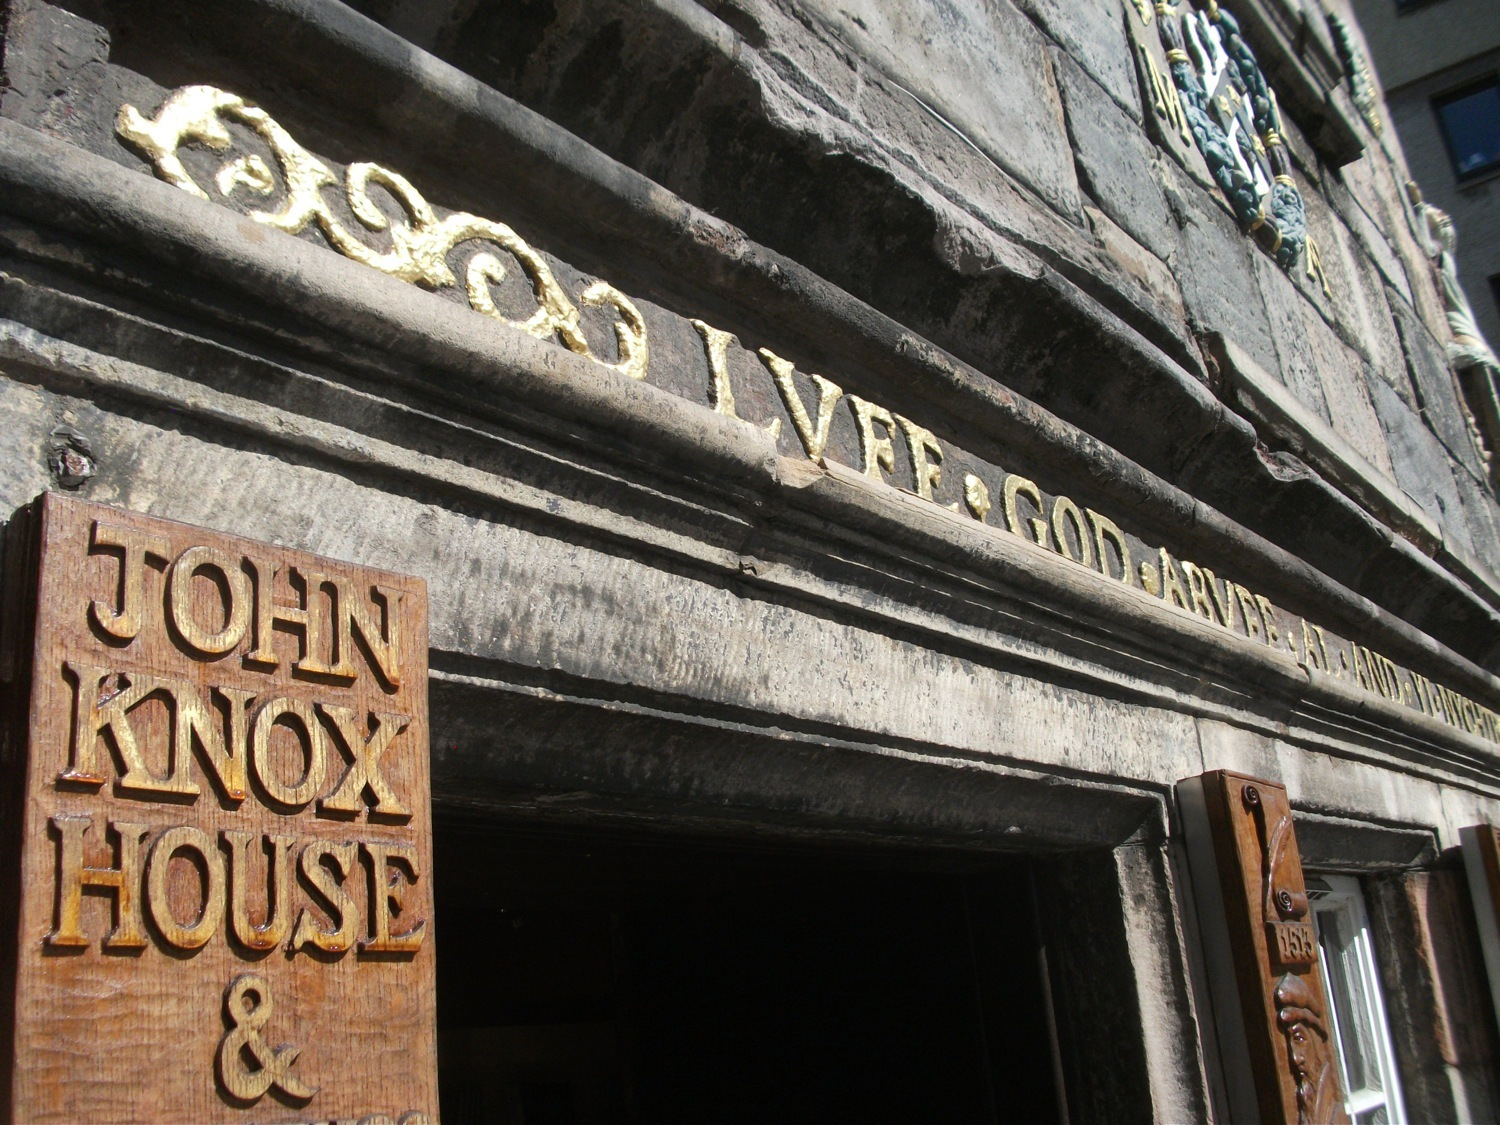 John Knox House, Museums, Edinburgh